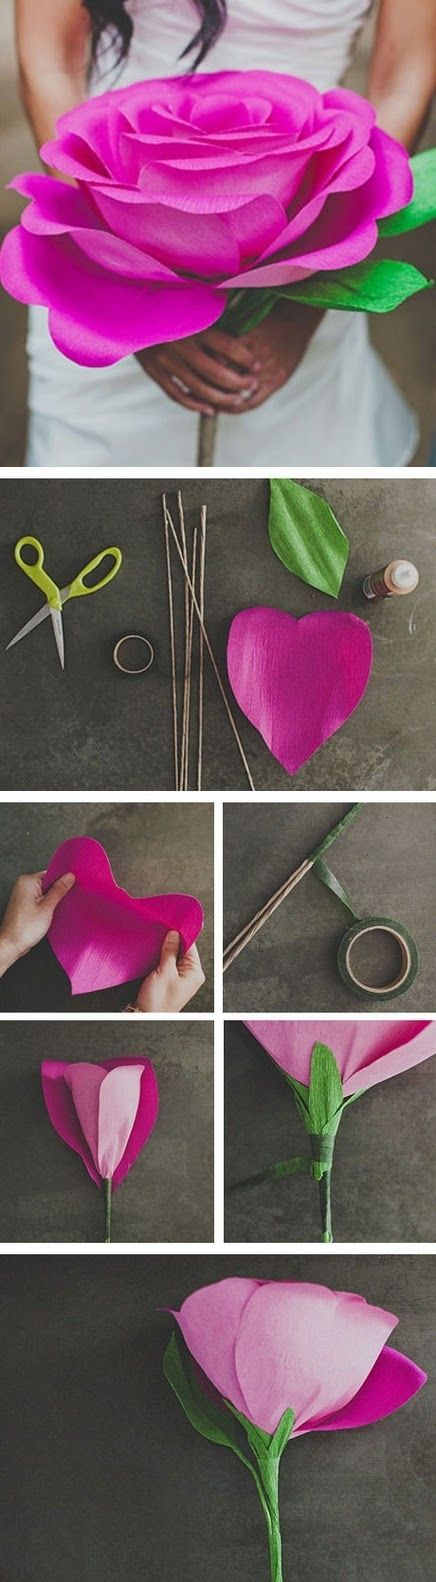 DIY Giant Paper Rose Flower Diy Crafts Craft Ideas Do It Yourself Projects Crafty